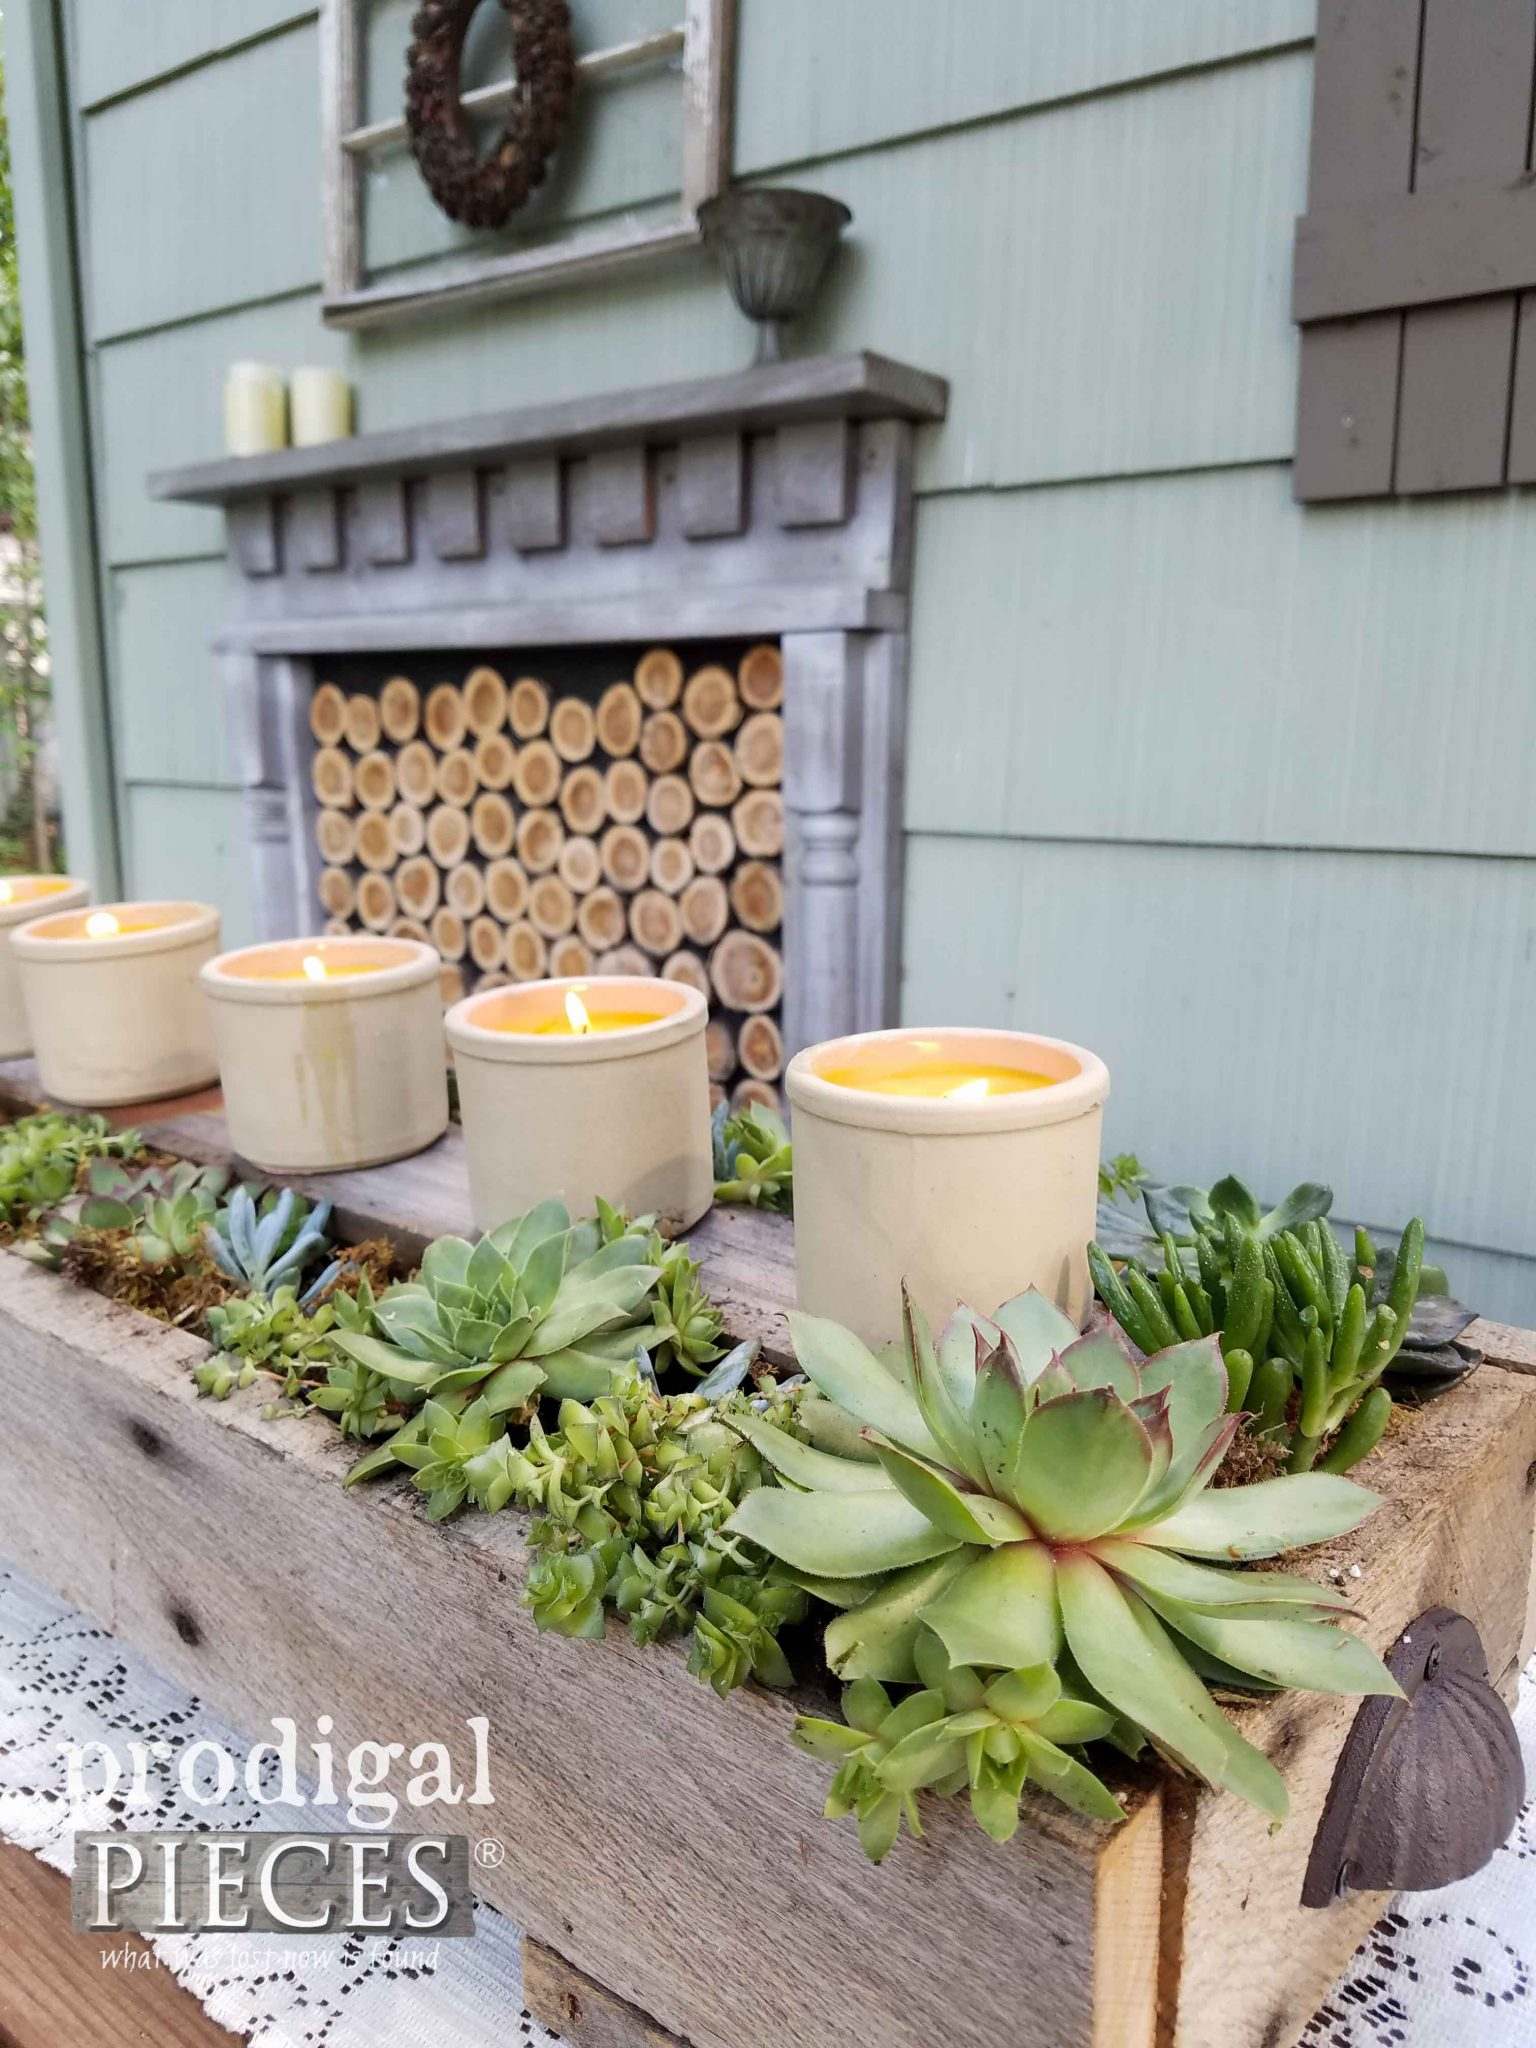 Rustic Succulent Planter for Your Indoor or Outdoor Decor by Prodigal Pieces | prodigalpieces.com